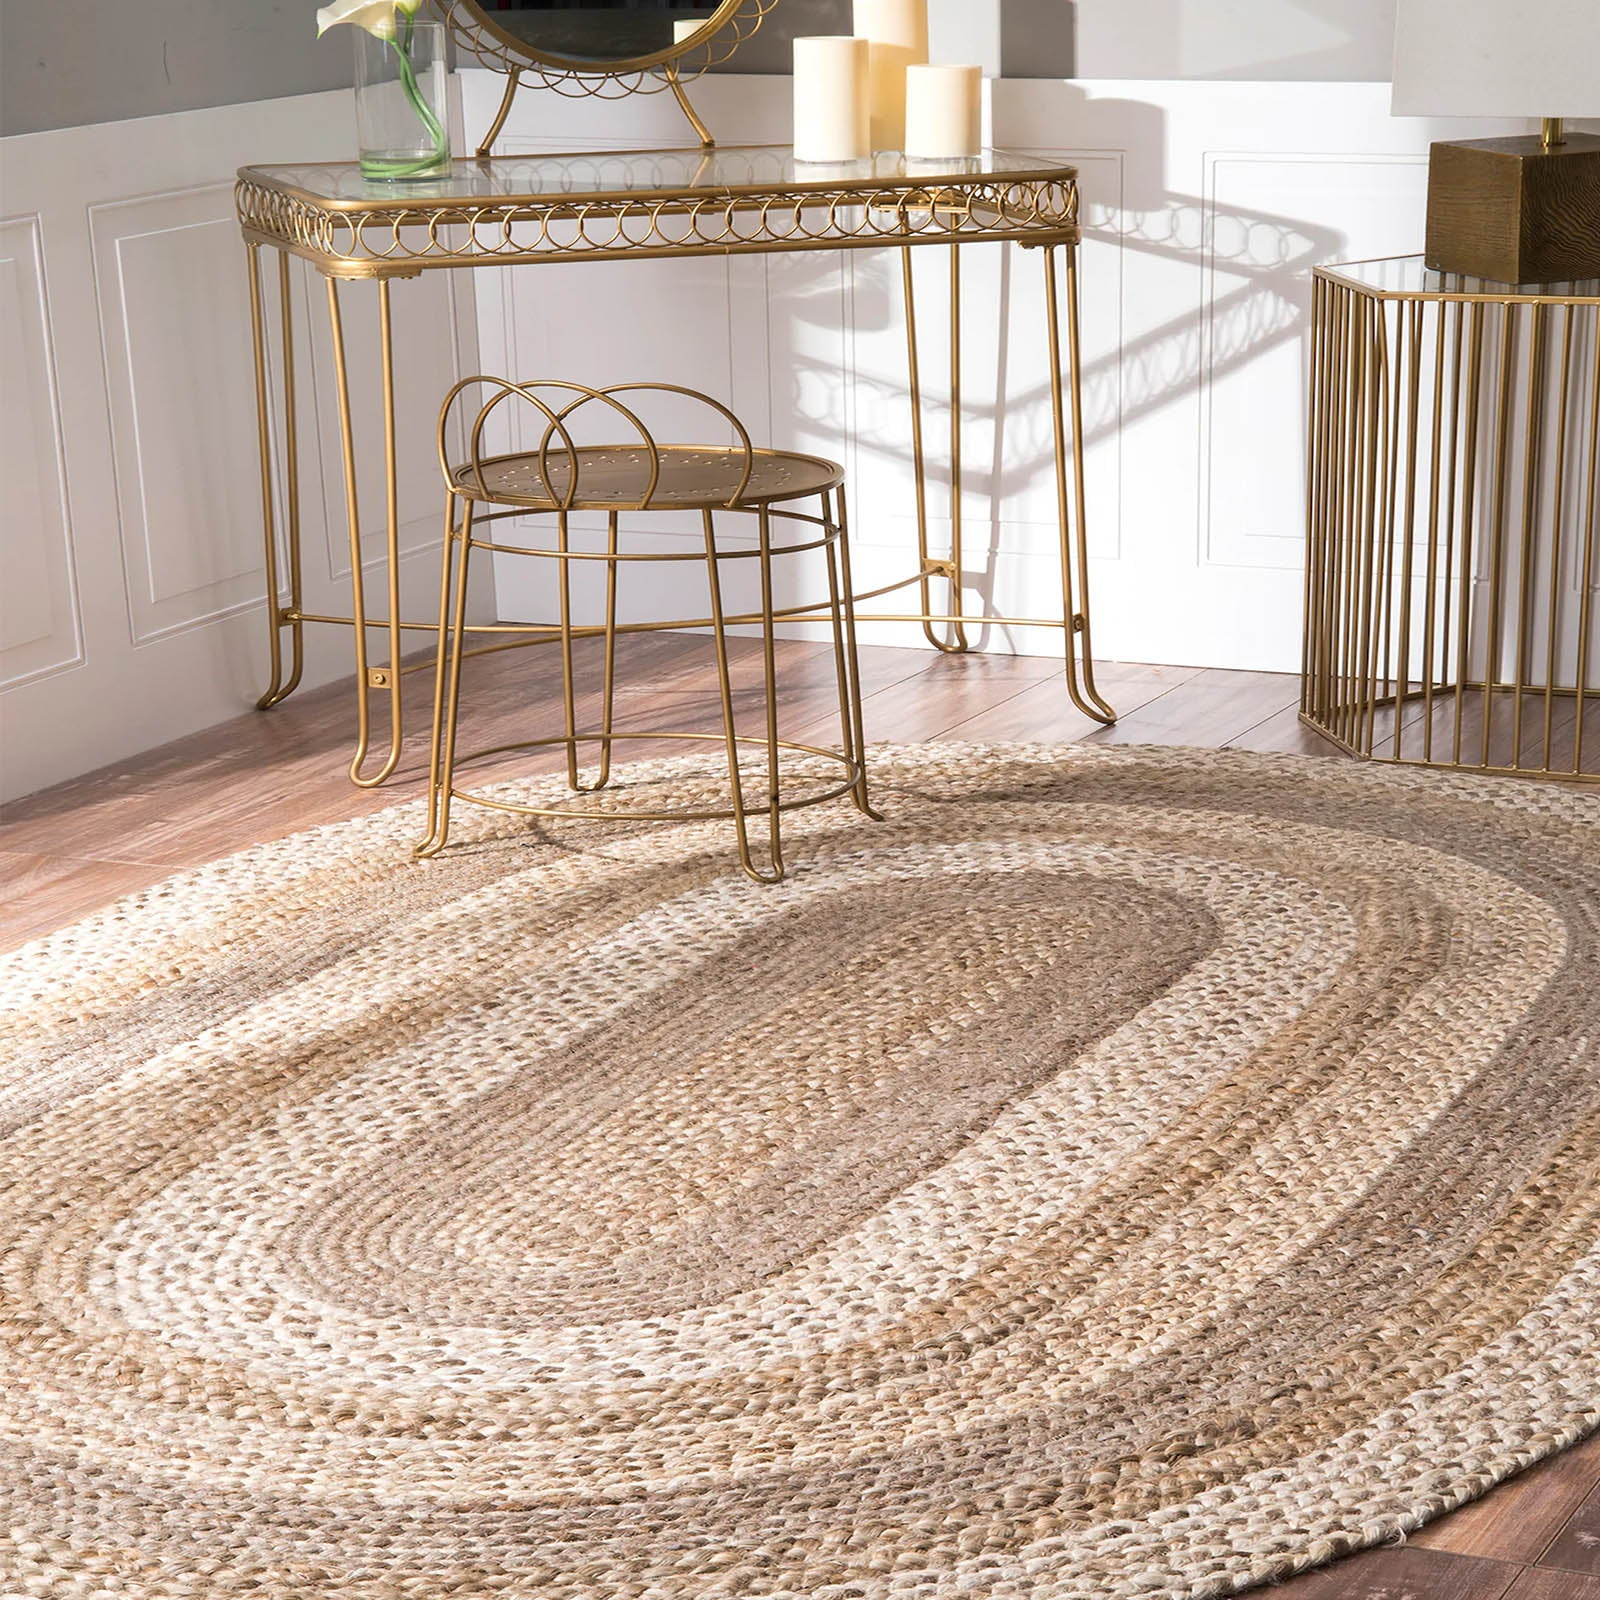 320X220 cm Braided handmade Jute Rug JH-2344-XL -  320X220 سم سجادة مصنوعة يدويًا من الجوت - Shop Online Furniture and Home Decor Store in Dubai, UAE at ebarza